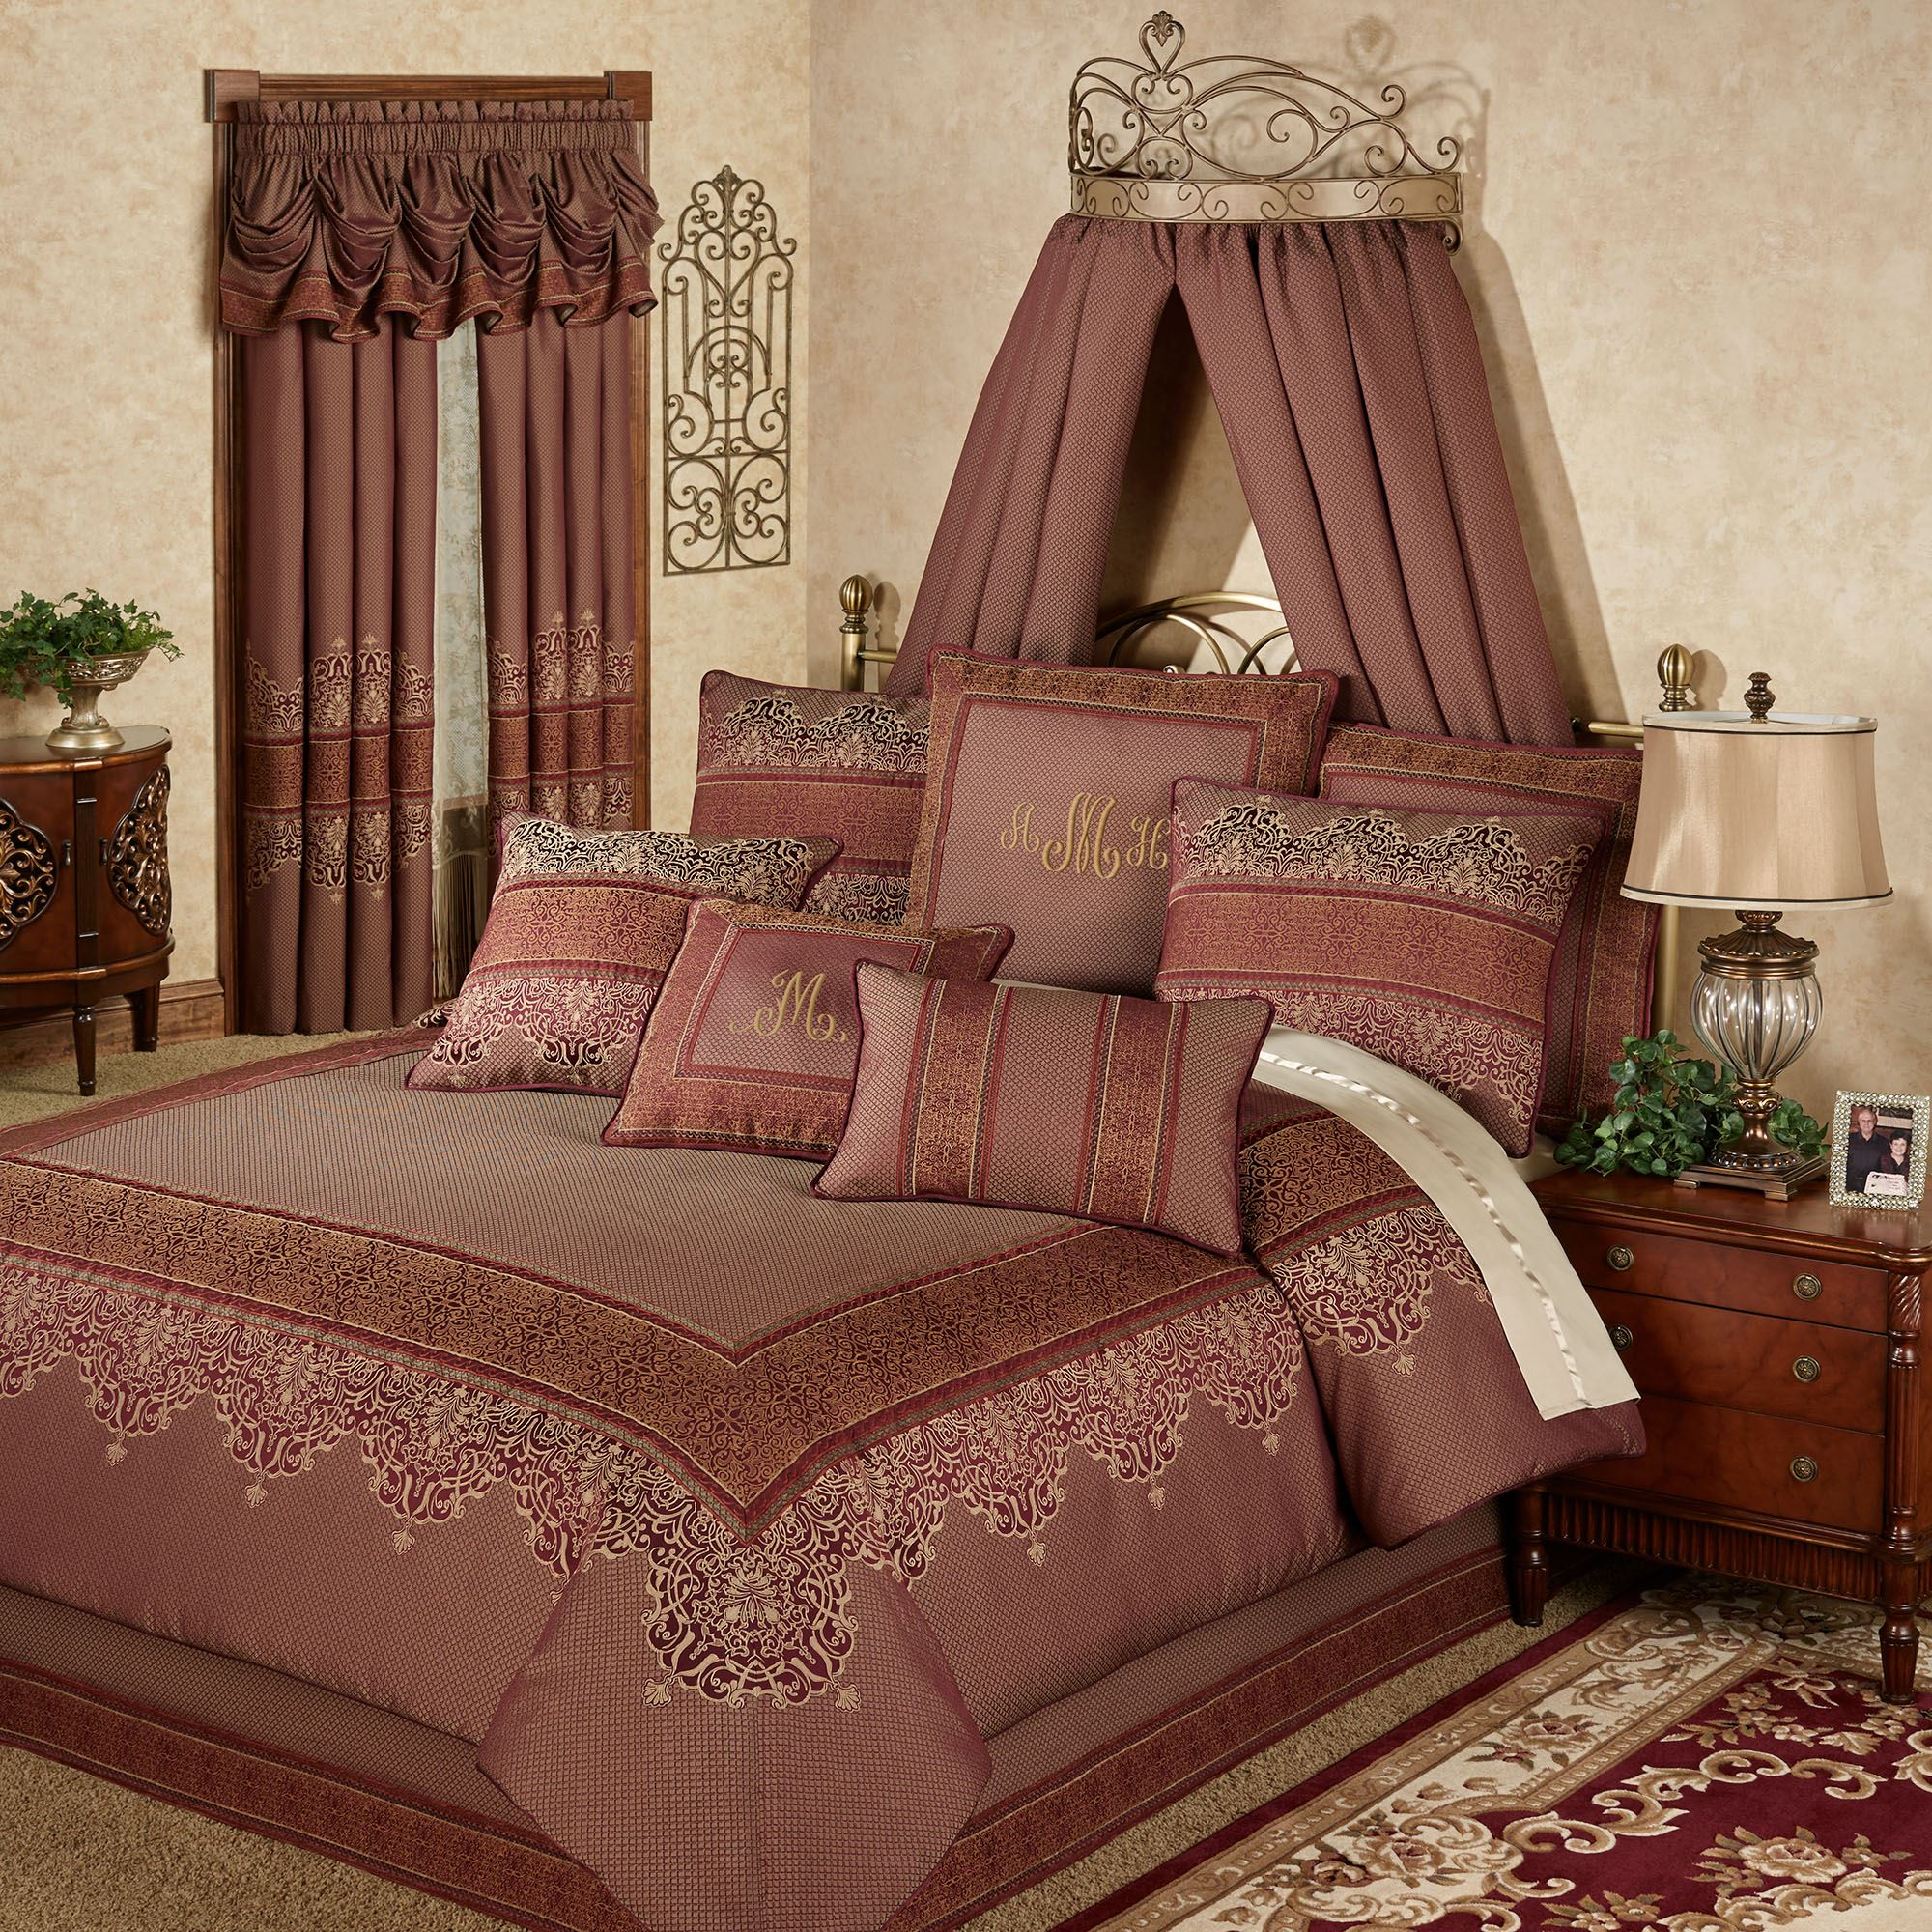 reverse corduroy today mini monterey bedding madison overstock free comforter burgundy bath product shipping set berber park to